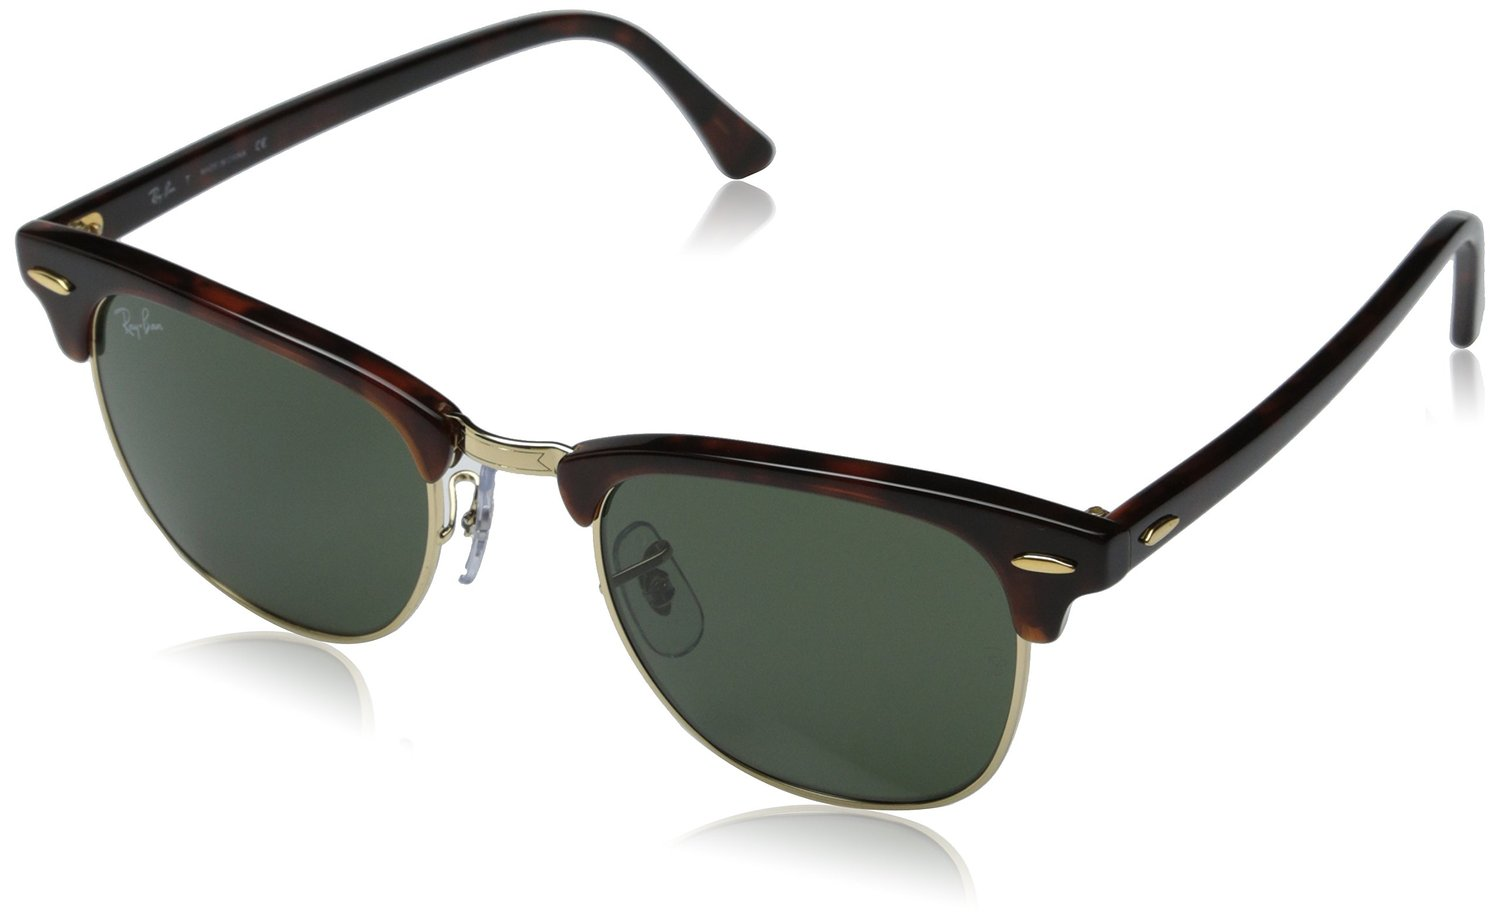 Amazon.com  Ray-Ban RB3016 Classic Clubmaster Sunglasses, Non-Polarized,  Tortoise Arista Frame Crystal Green Lens, 51 ... bab3ba0527